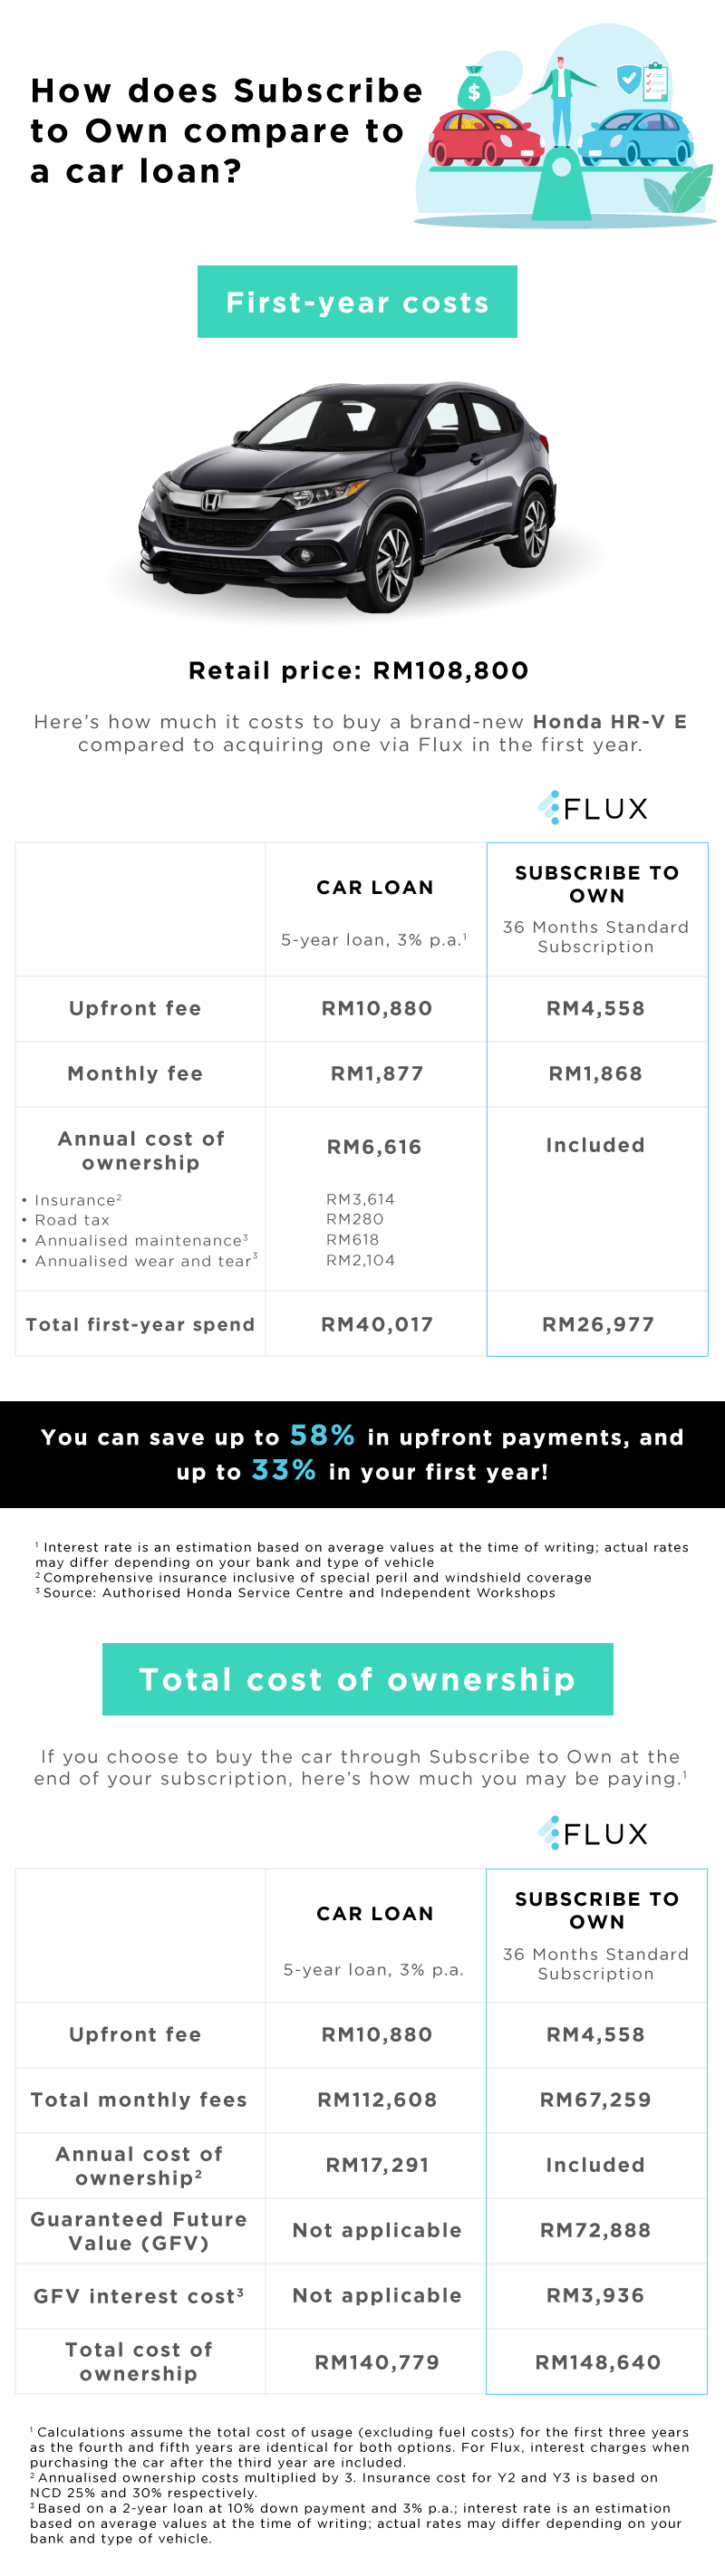 Car loan compared to Flux car subscription